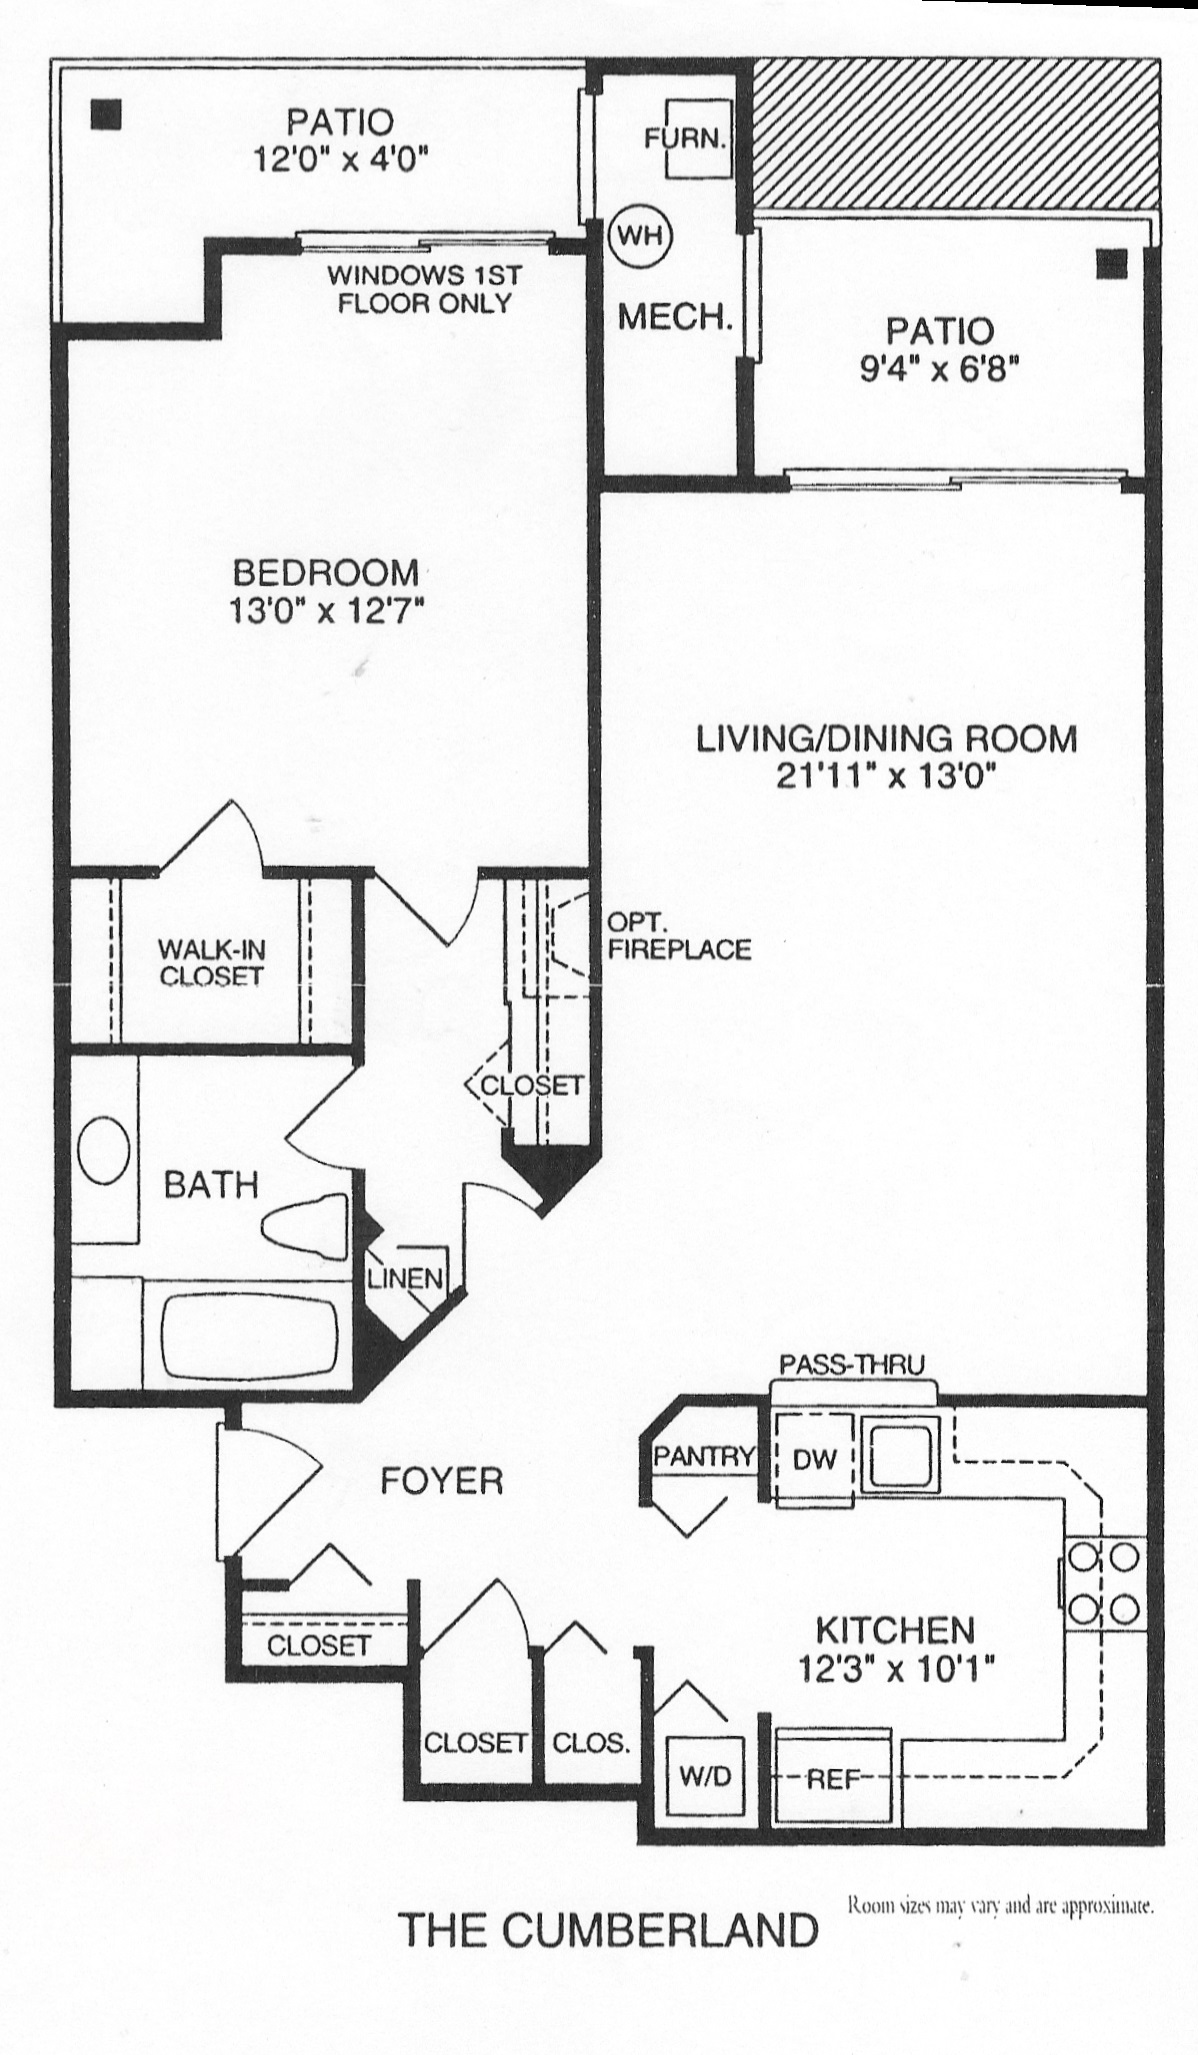 Condo building floor plans condominium plan friv 5 games for Condo floor plan